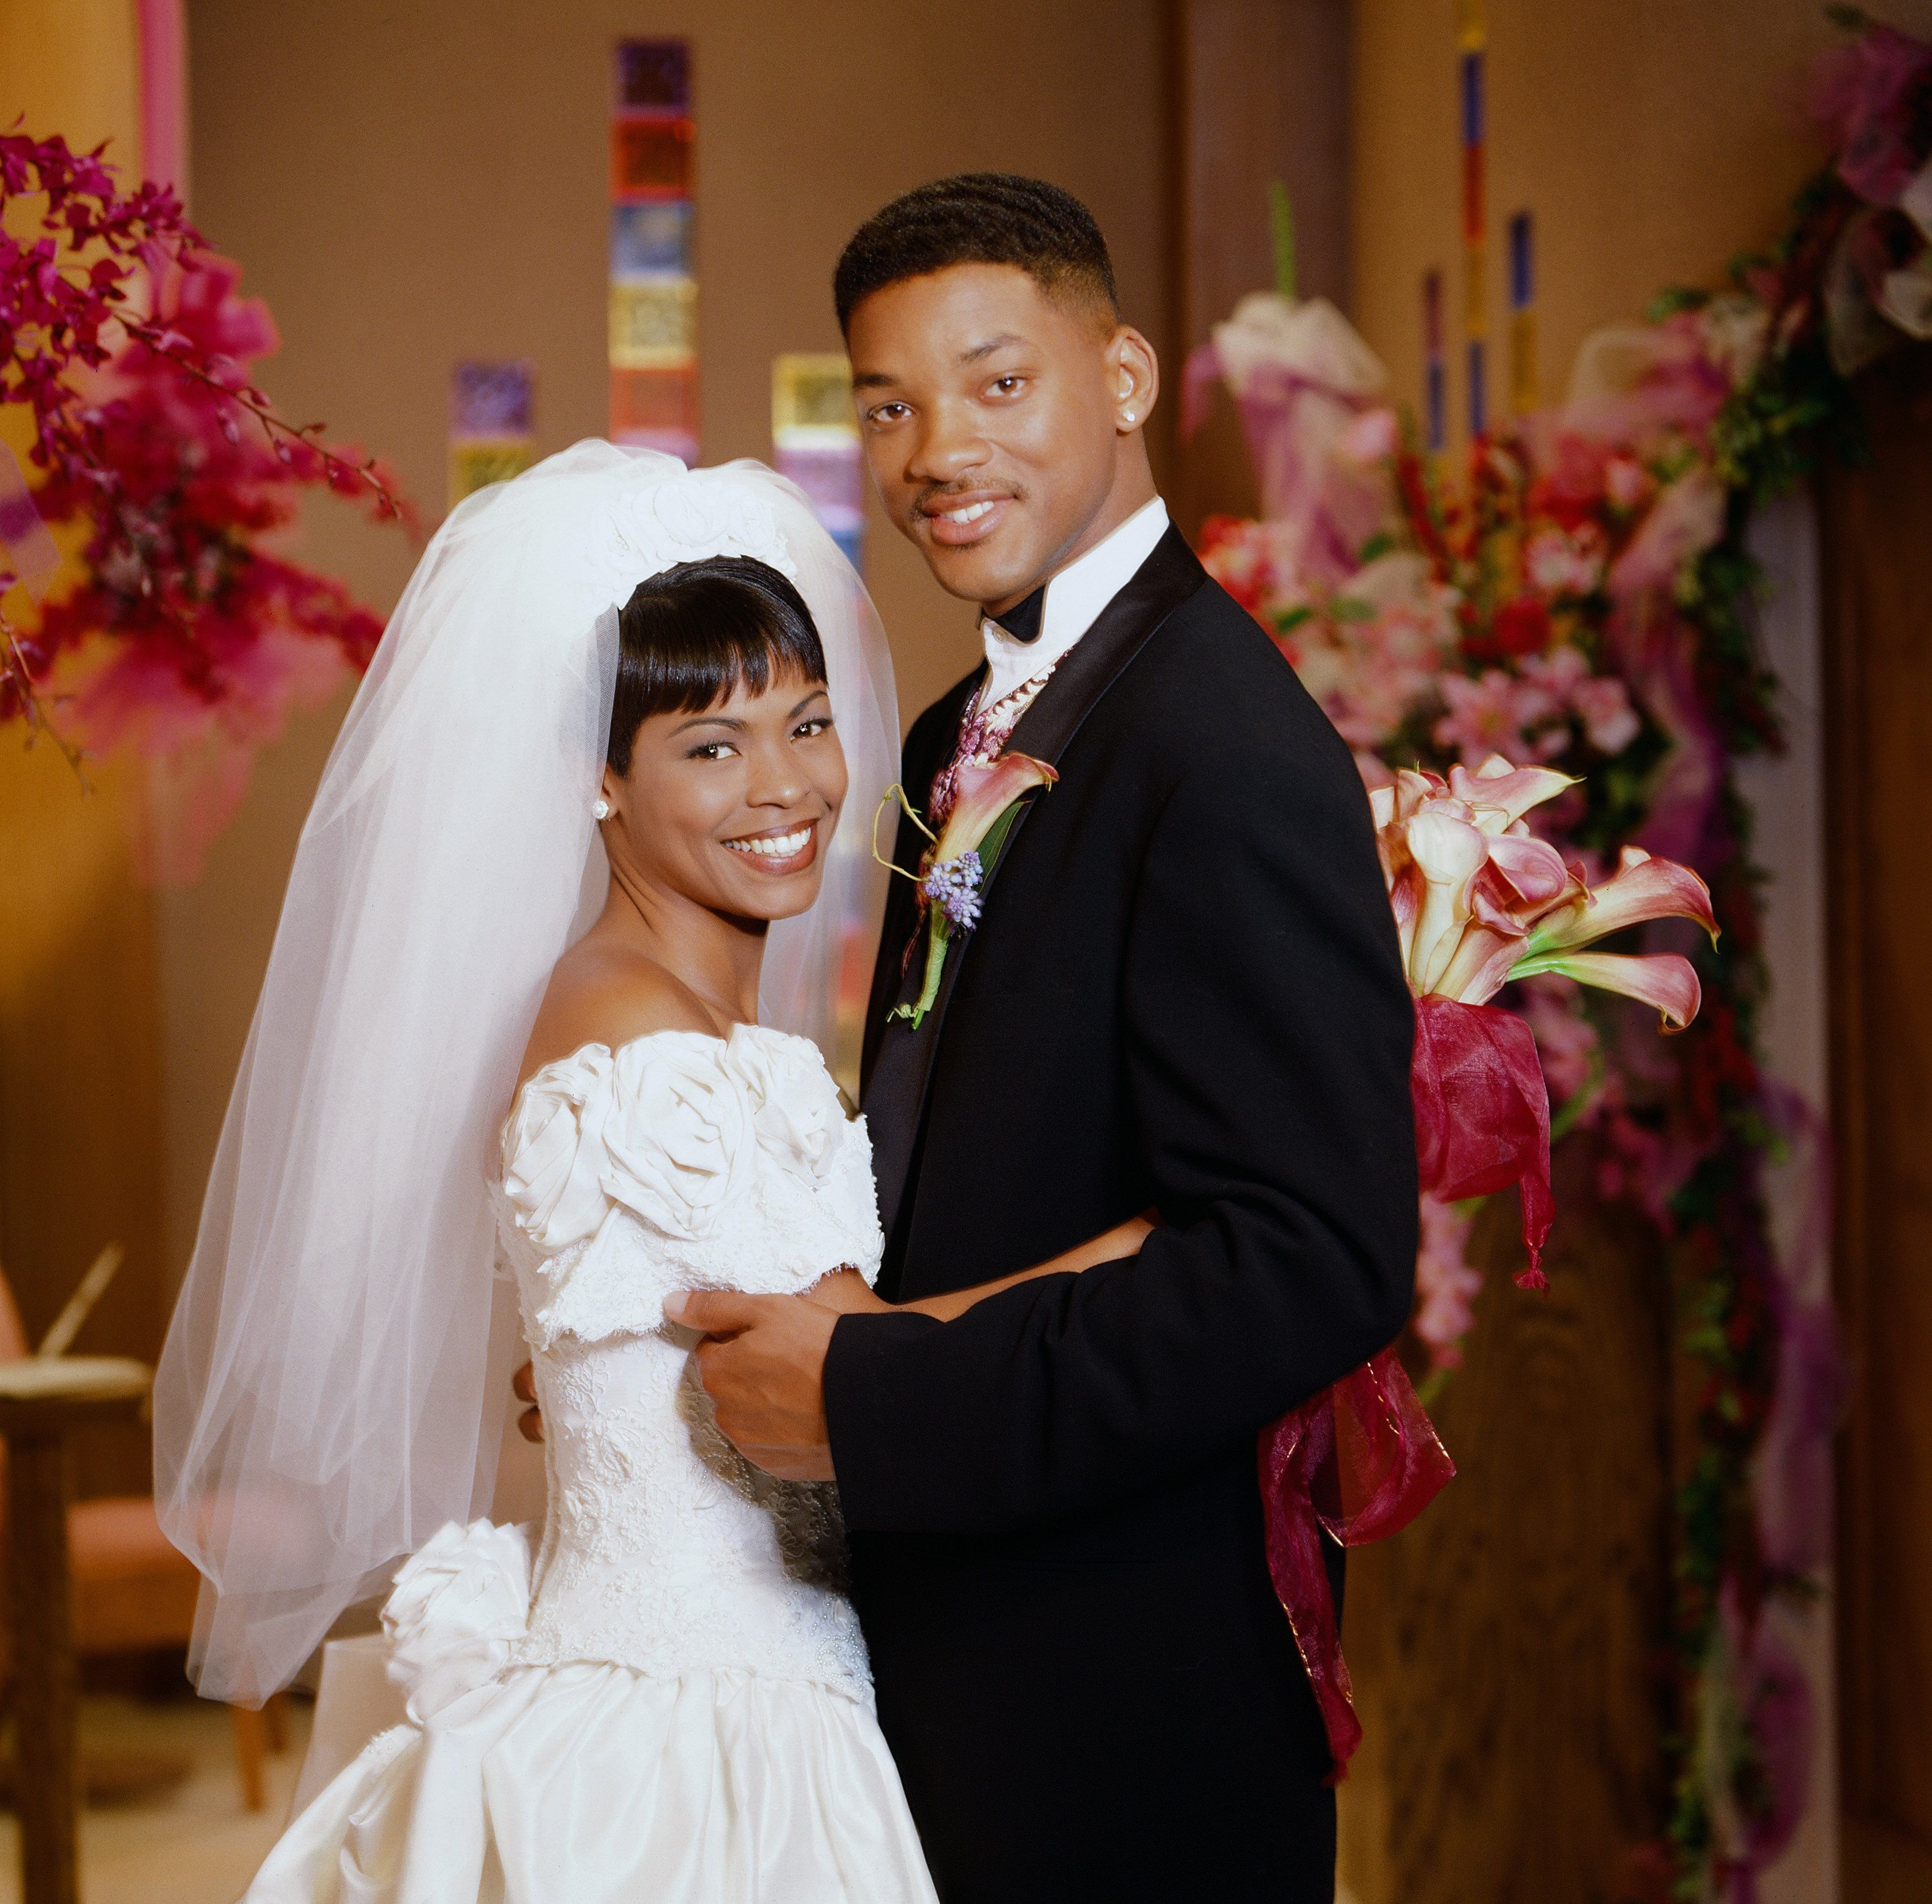 """Nia Long as Lisa Wilkes, Will Smith as William 'Will' Smith on the """"The Fresh Prince of Bel Air.""""   Source: Getty Images"""